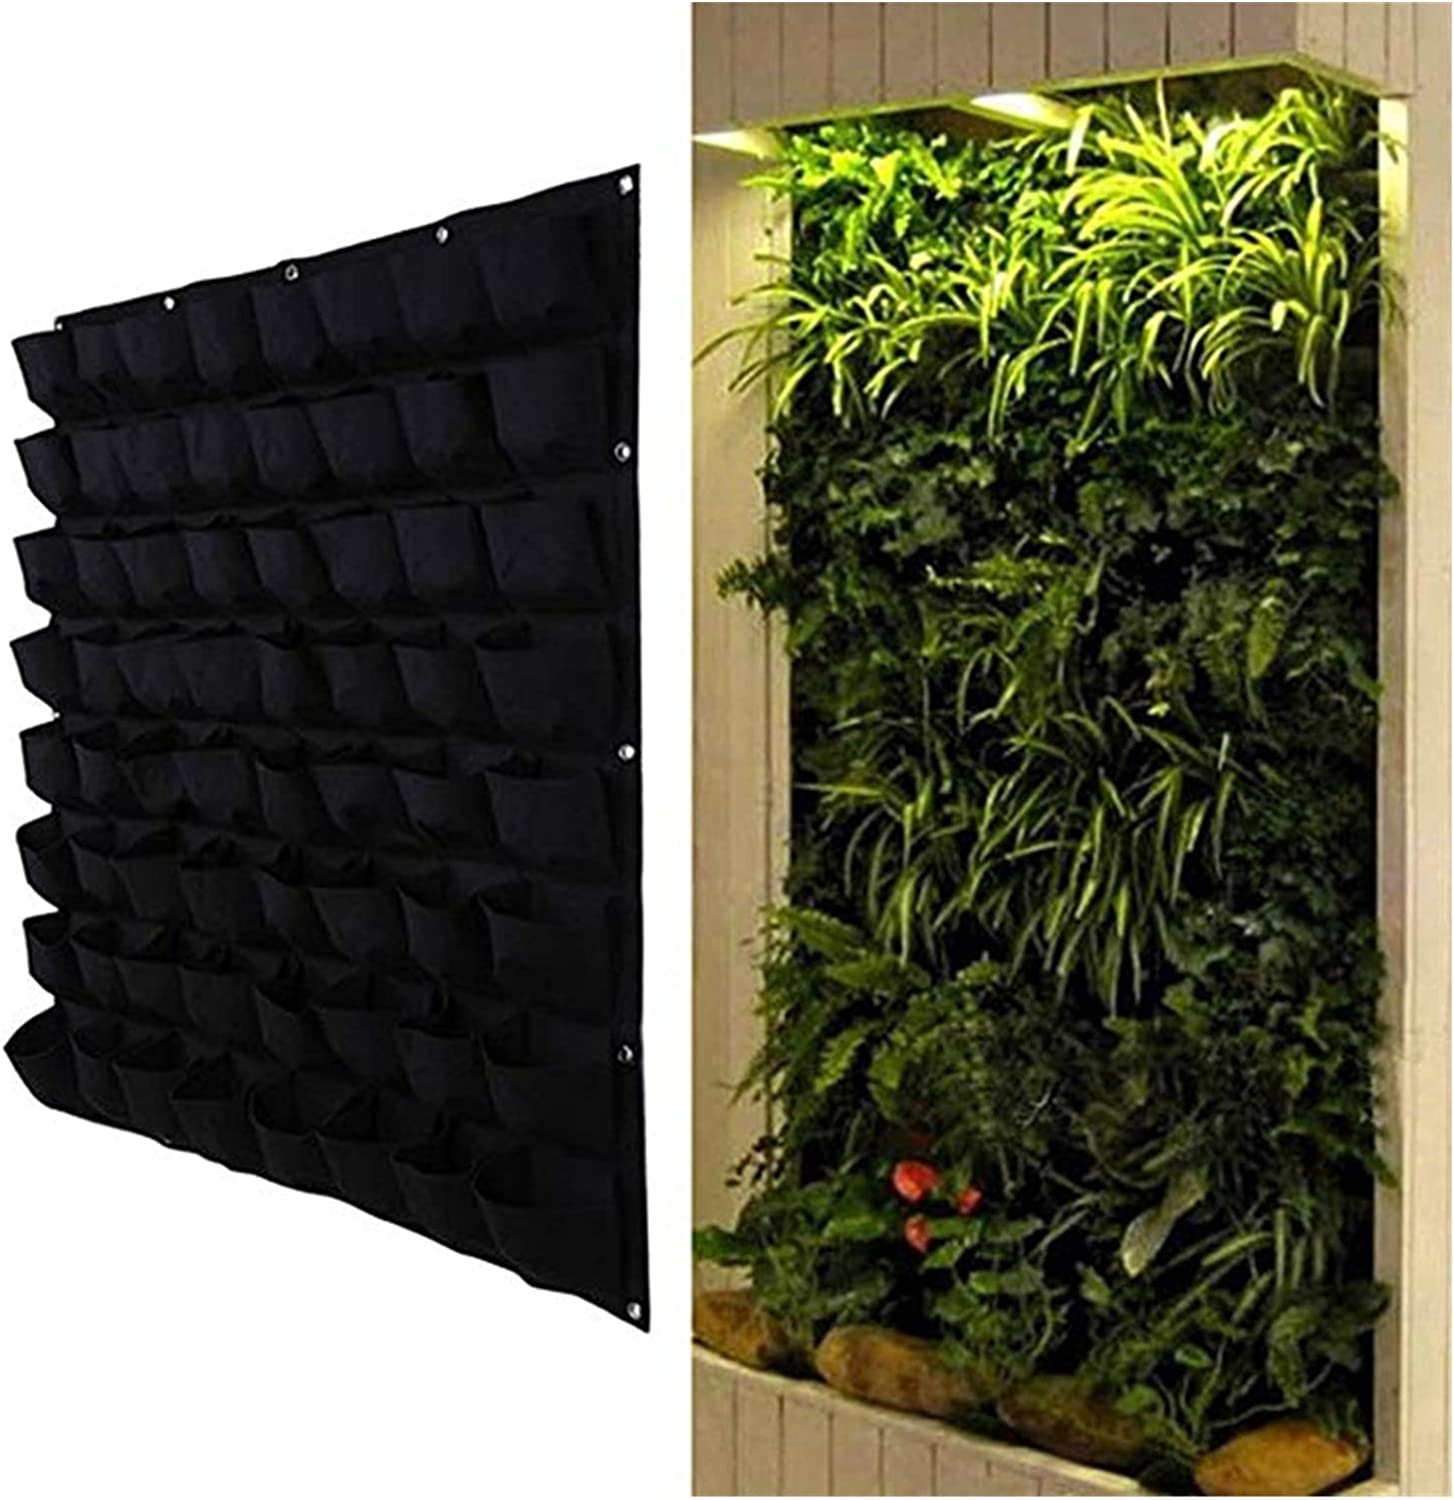 Black Color Wall Hanging Planting Indianapolis Mall Bags 36 Bag Pockets Grow 72 Genuine Pl